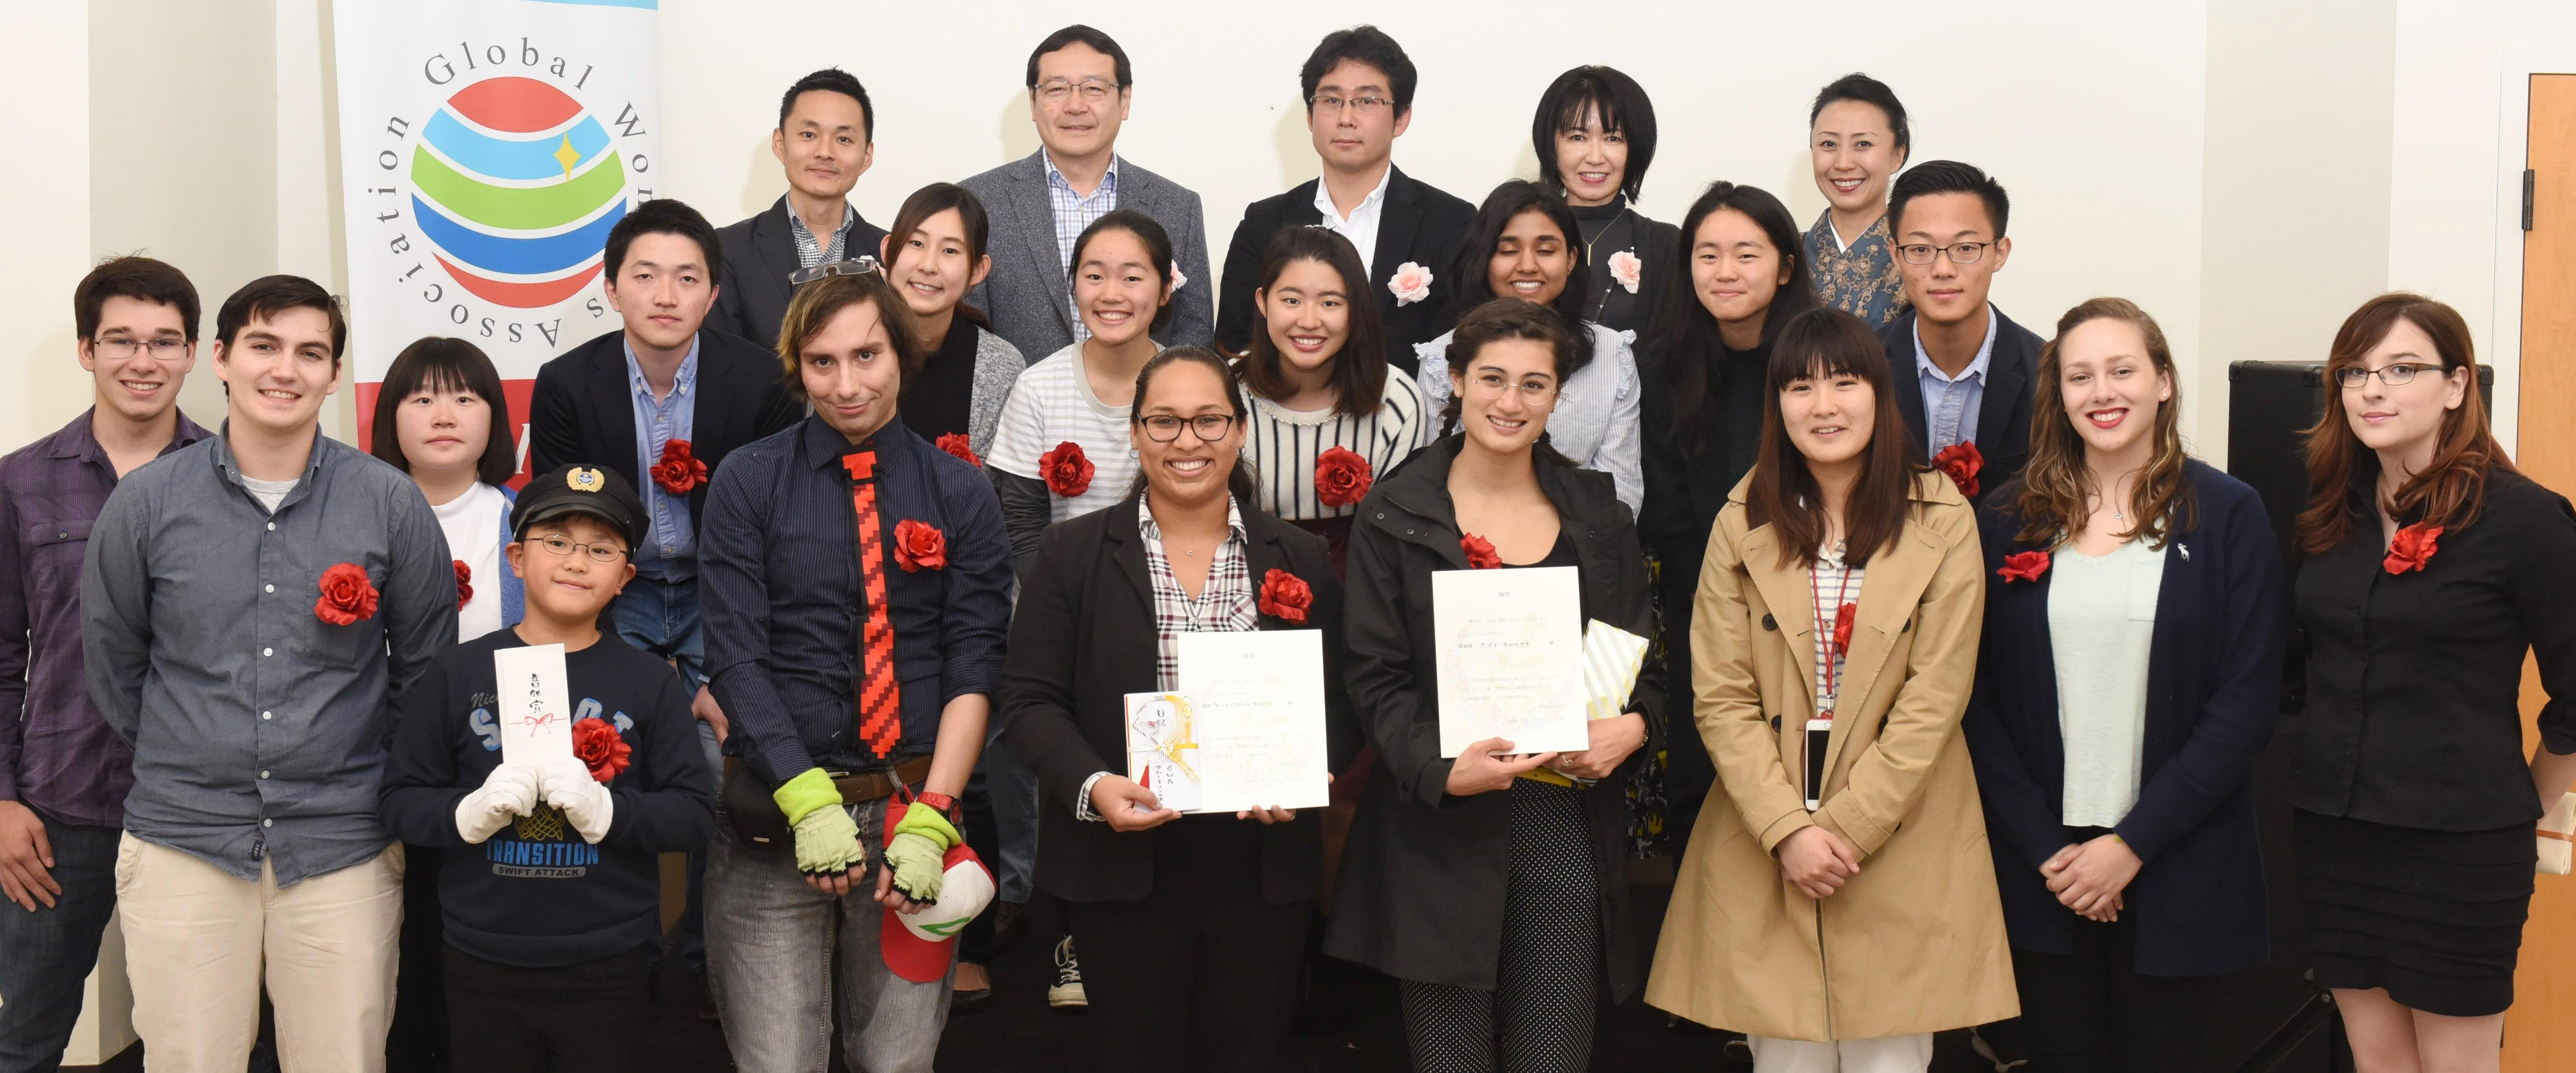 Congratulations to DVC students for their achievements in the Japanese speech contest hosted by Global Women's Association.